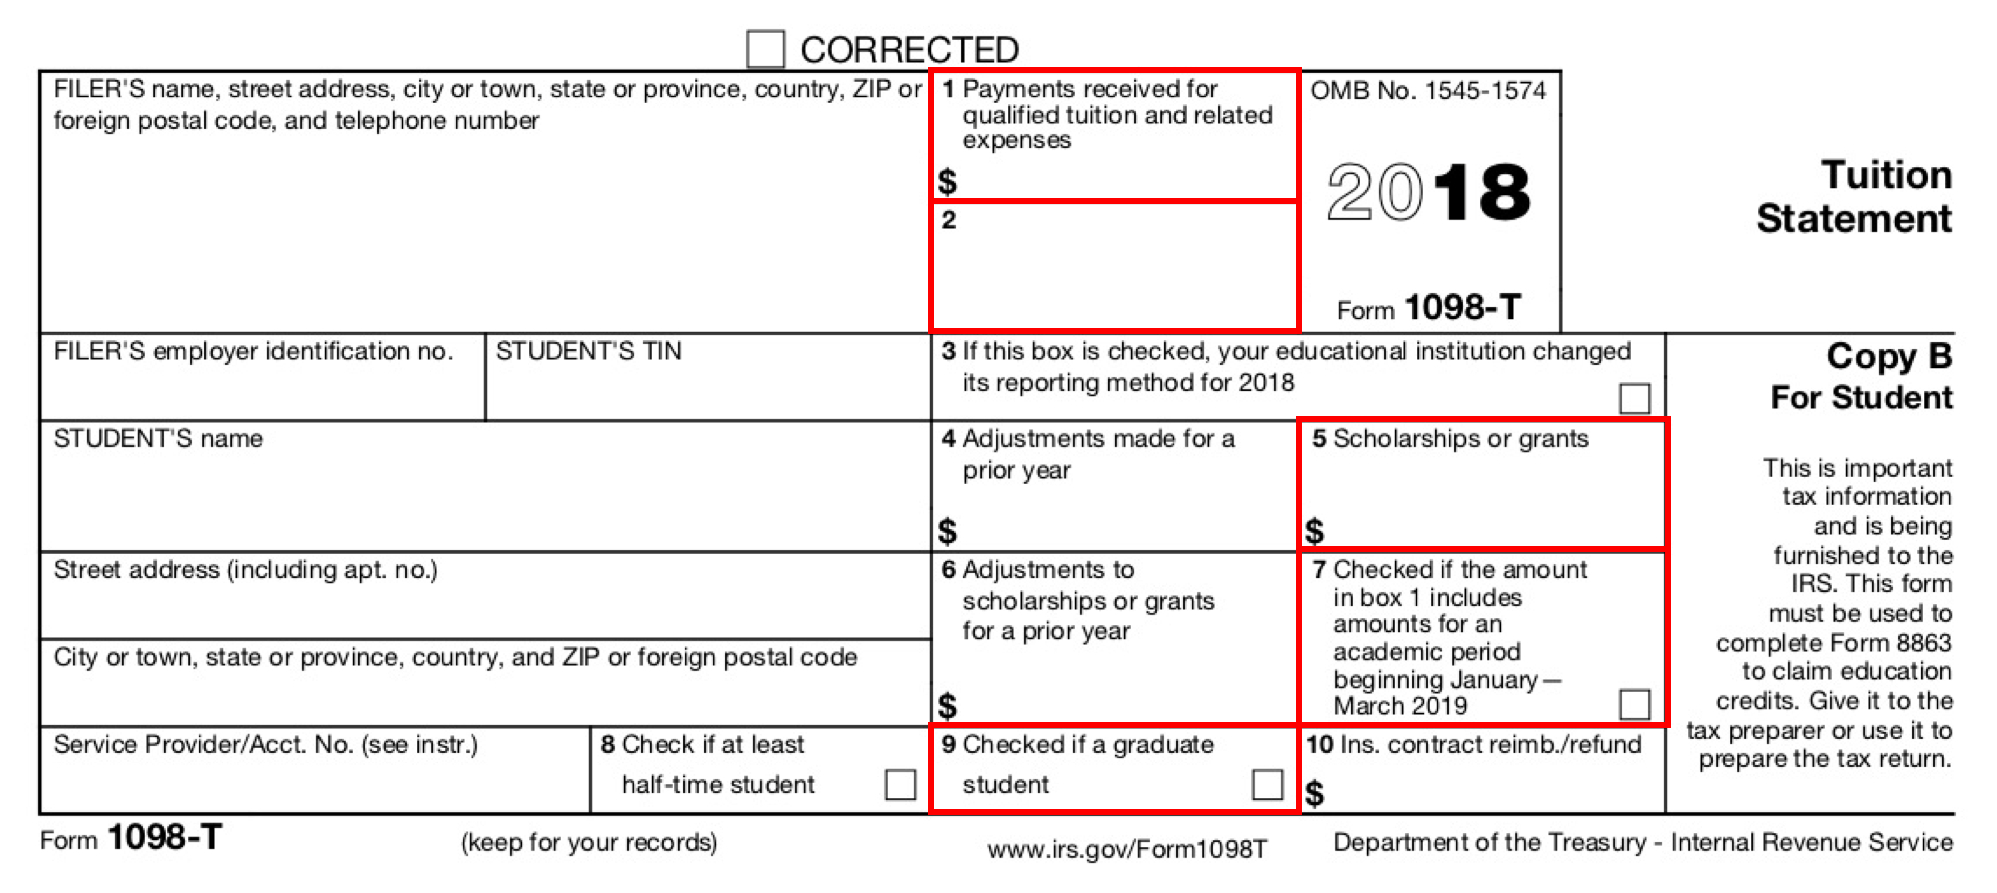 Form 1098-T: Still Causing Trouble For Funded Graduate